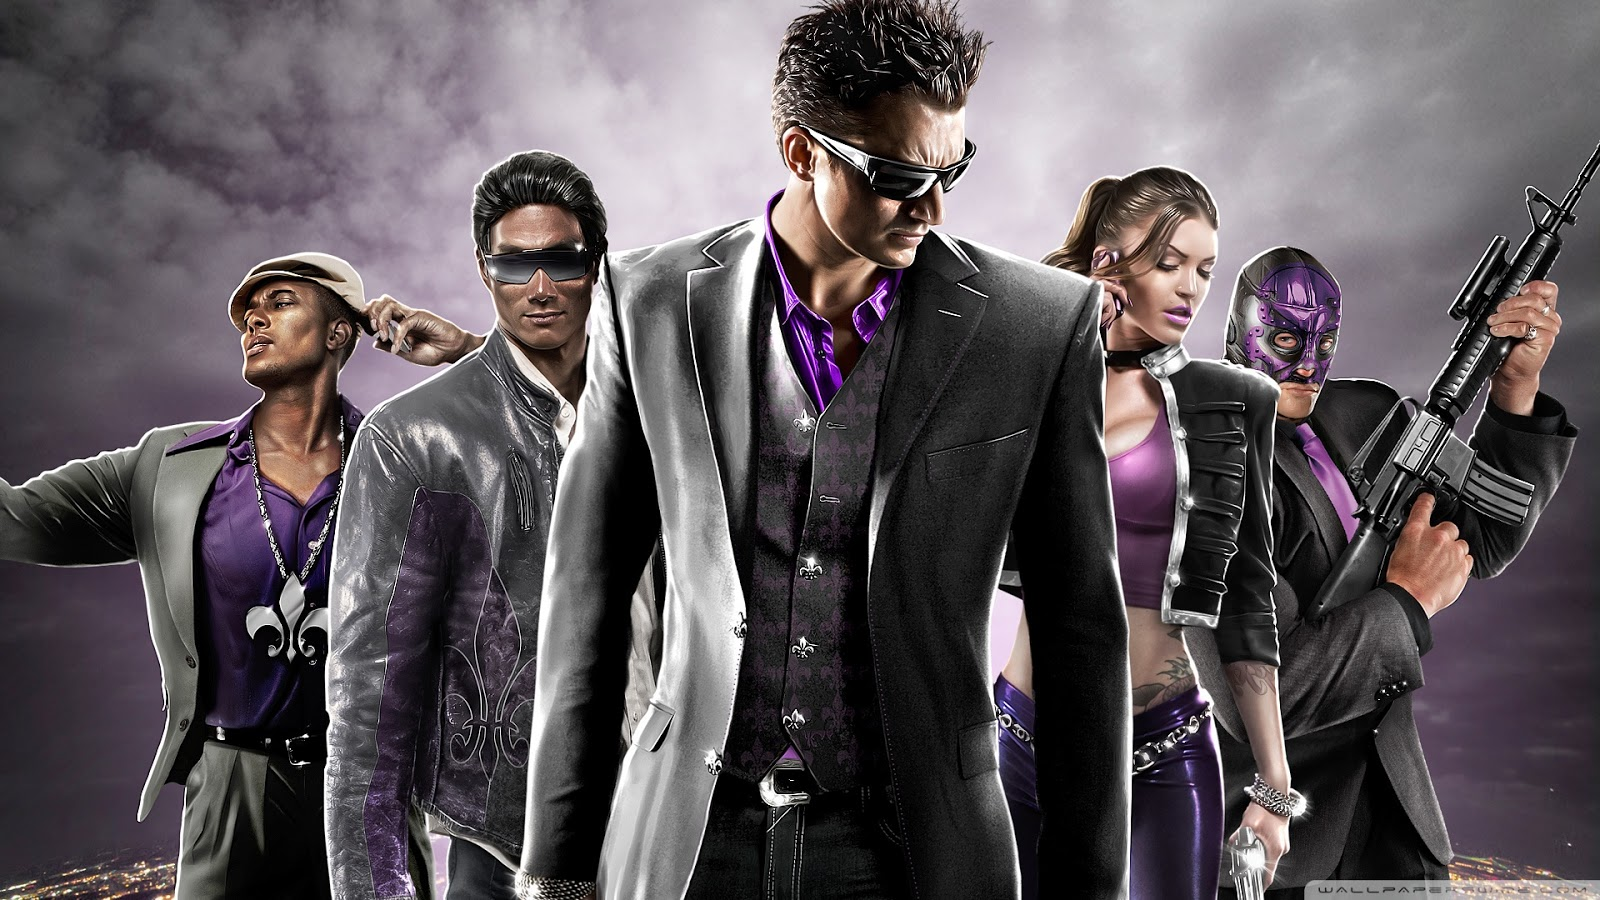 saints row 4 wallpaper 1